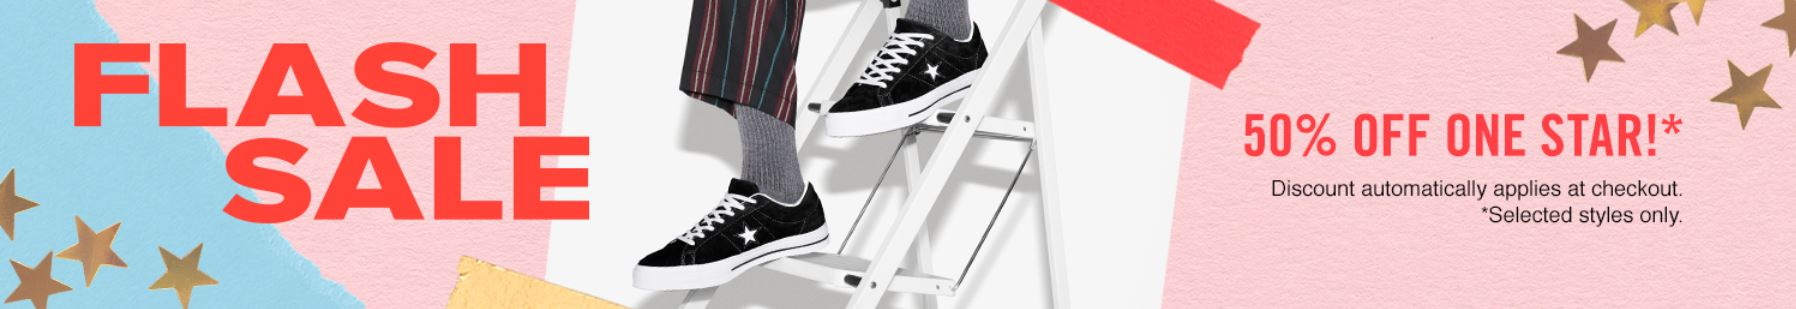 Converse Flash Sale | Bagstowear